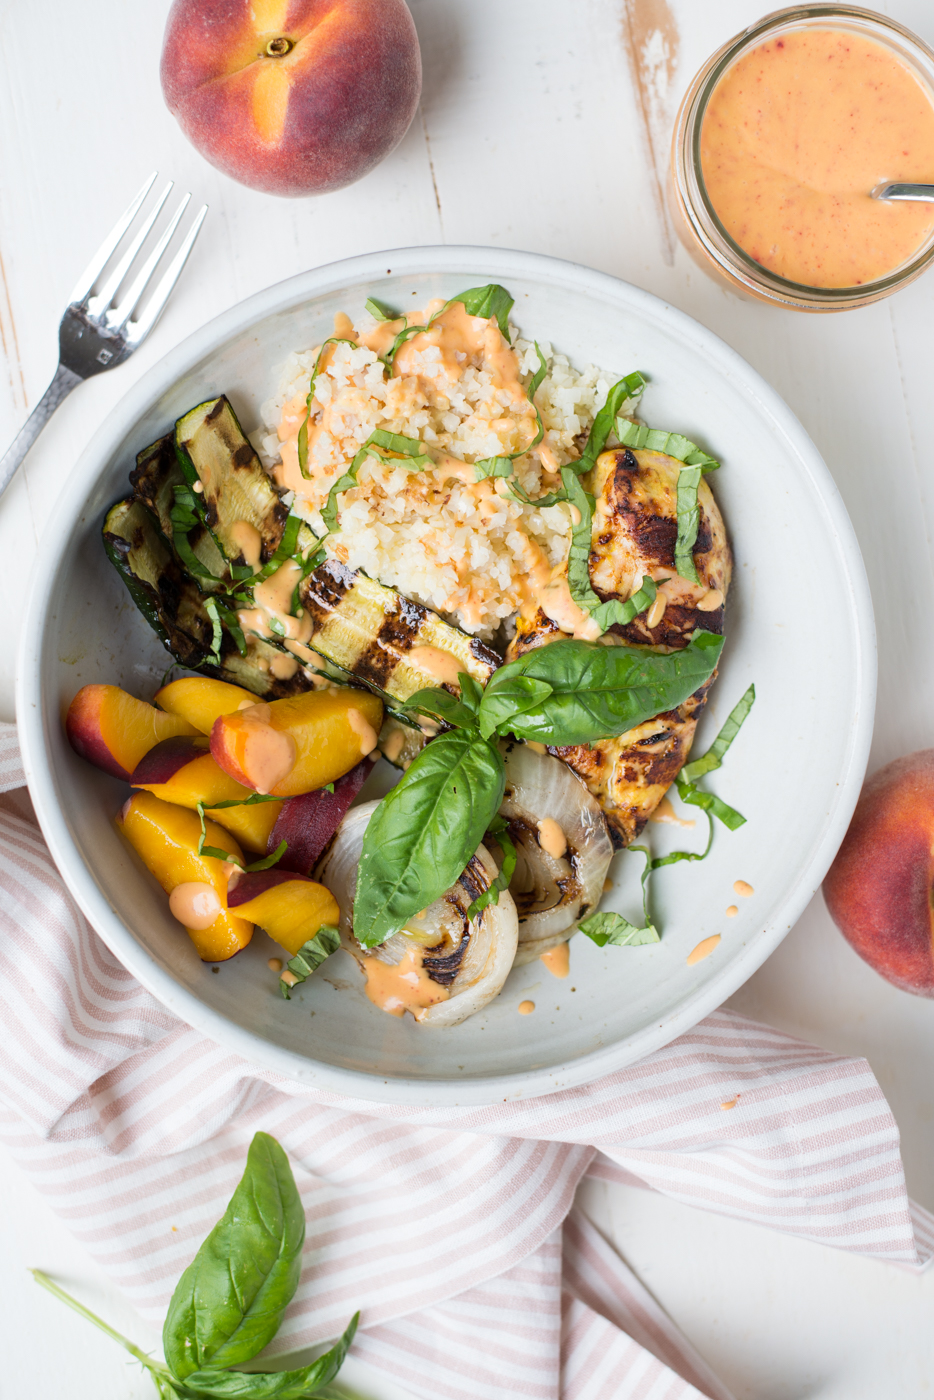 Bursting with vibrant flavors and nourishing ingredients, Peach Chicken Basil Glow Bowls will have your feeling amazing from the inside out. A gluten-free, dairy-free, paleo, whole30 recipe.